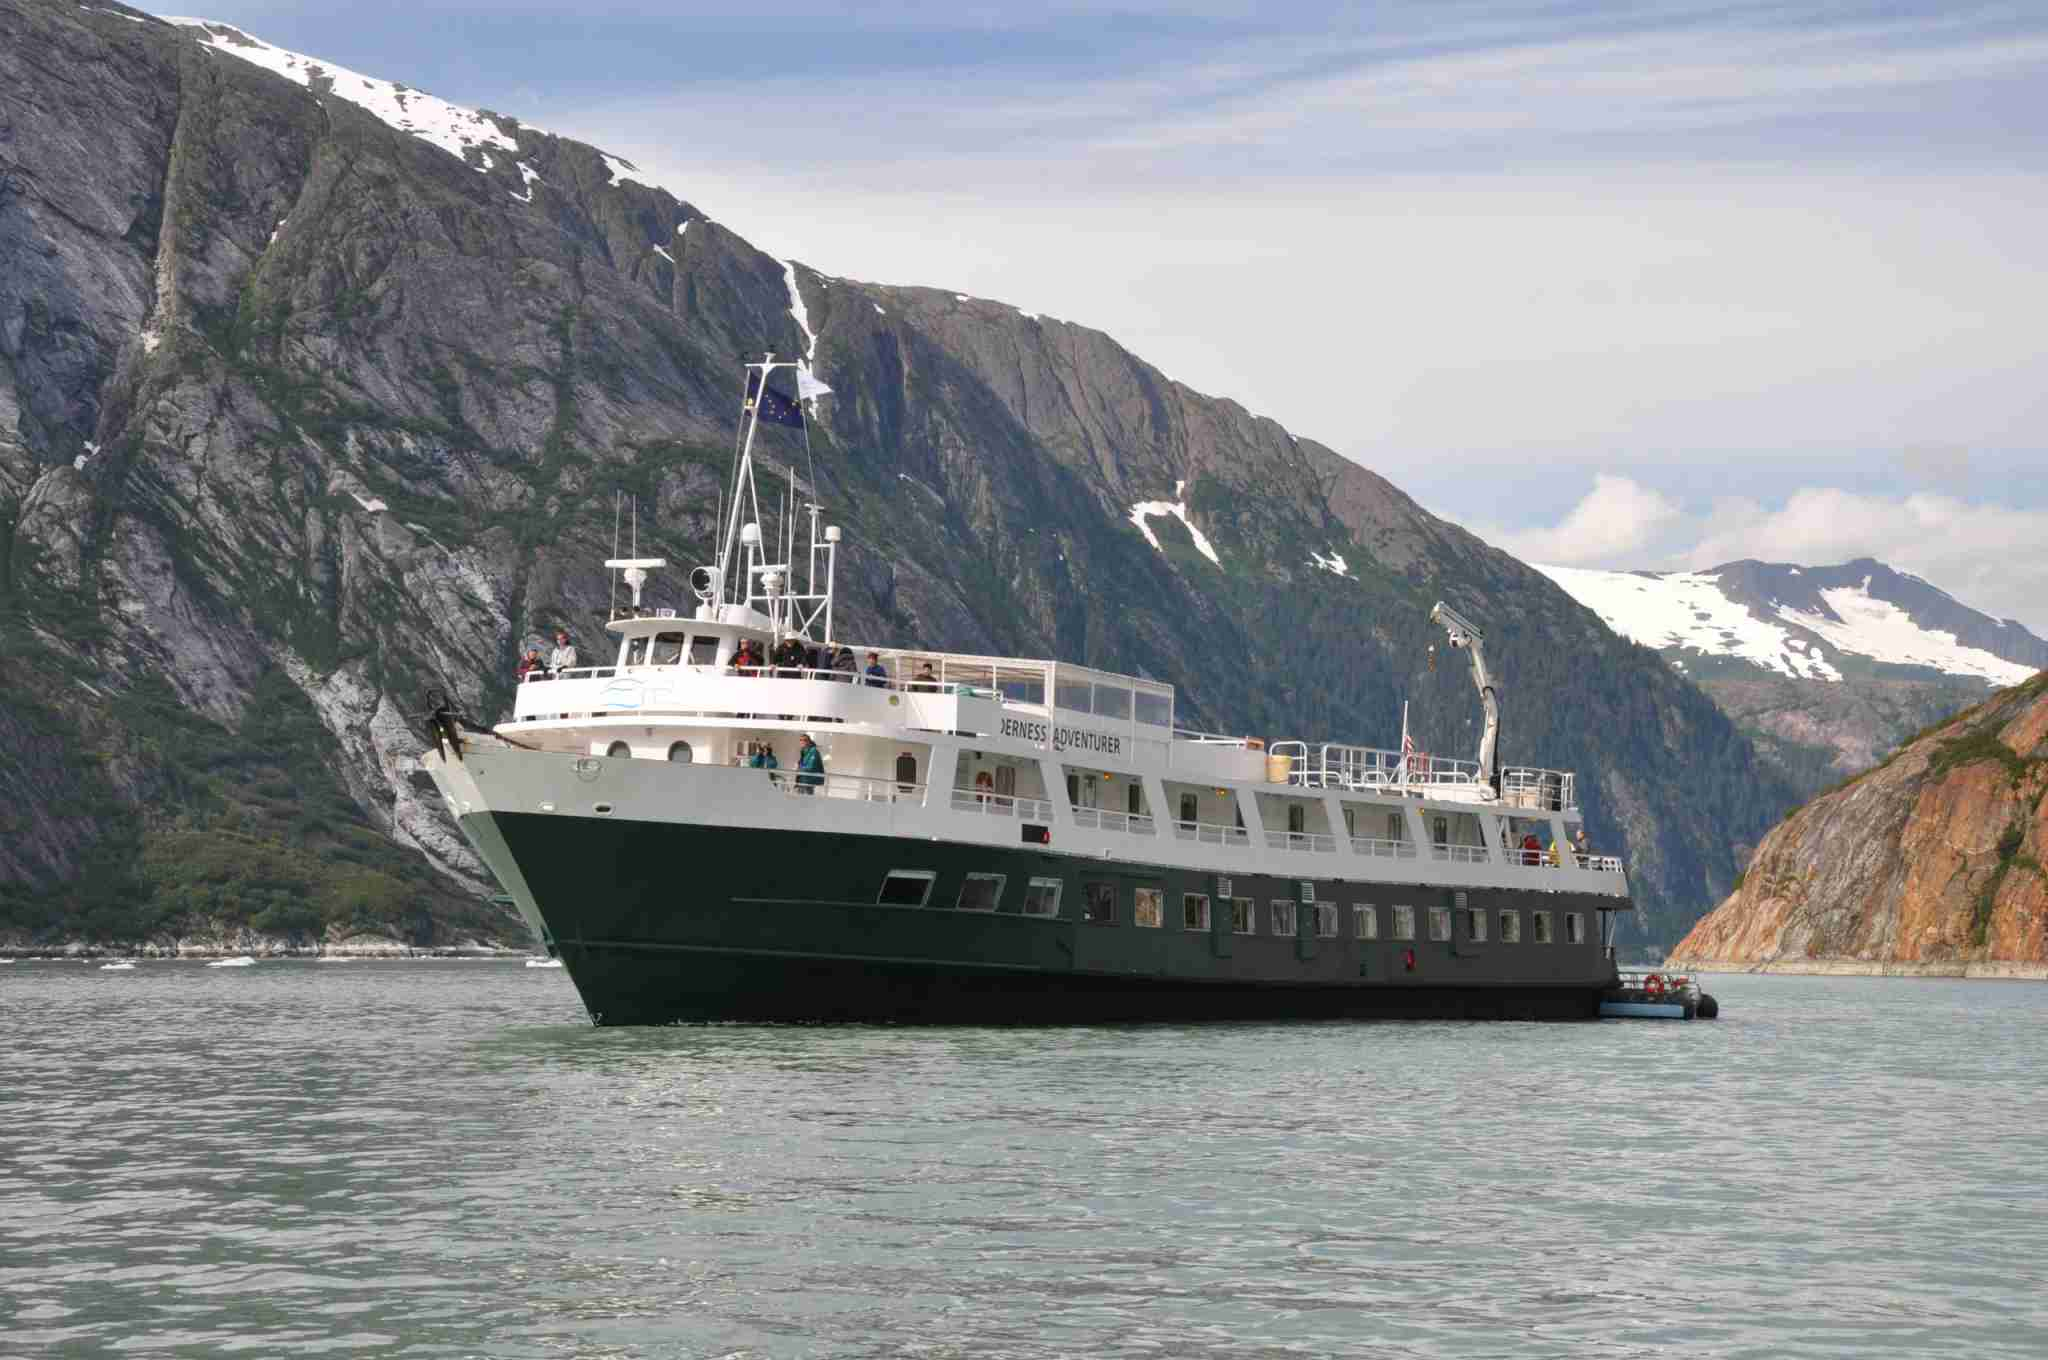 UnCruise Adventures operates adventure-focused trips in Alaska on small vessels such as the Wilderness Adventurer. (Photo courtesy of UnCruise Adventures)